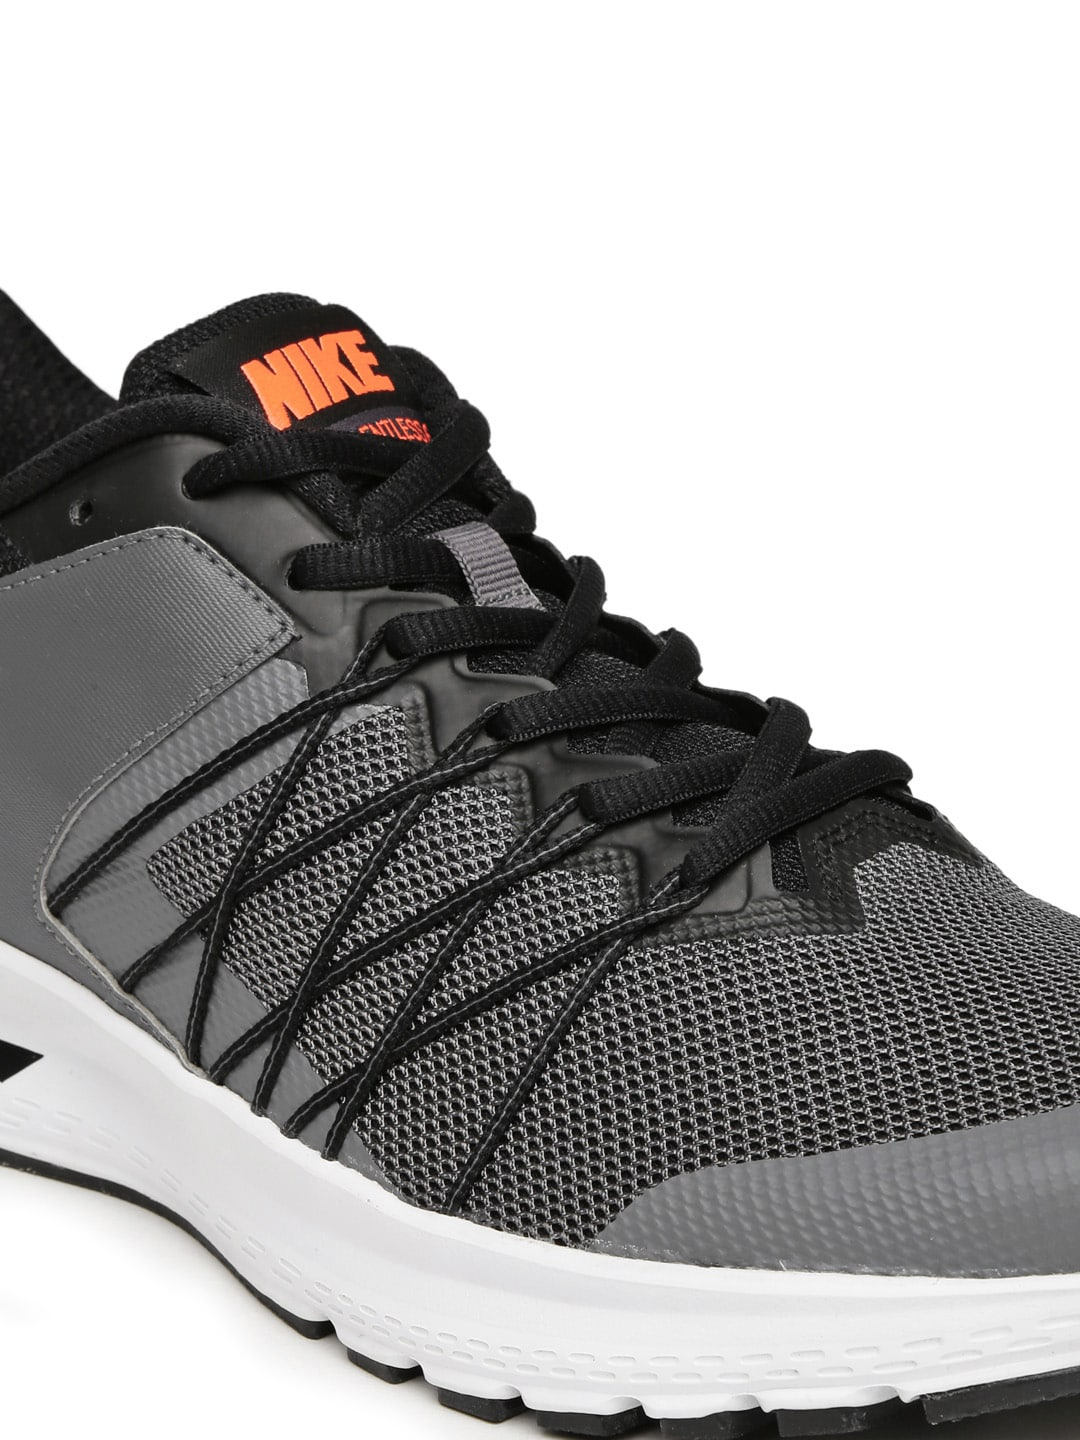 Nike Running Shoes - Myntra